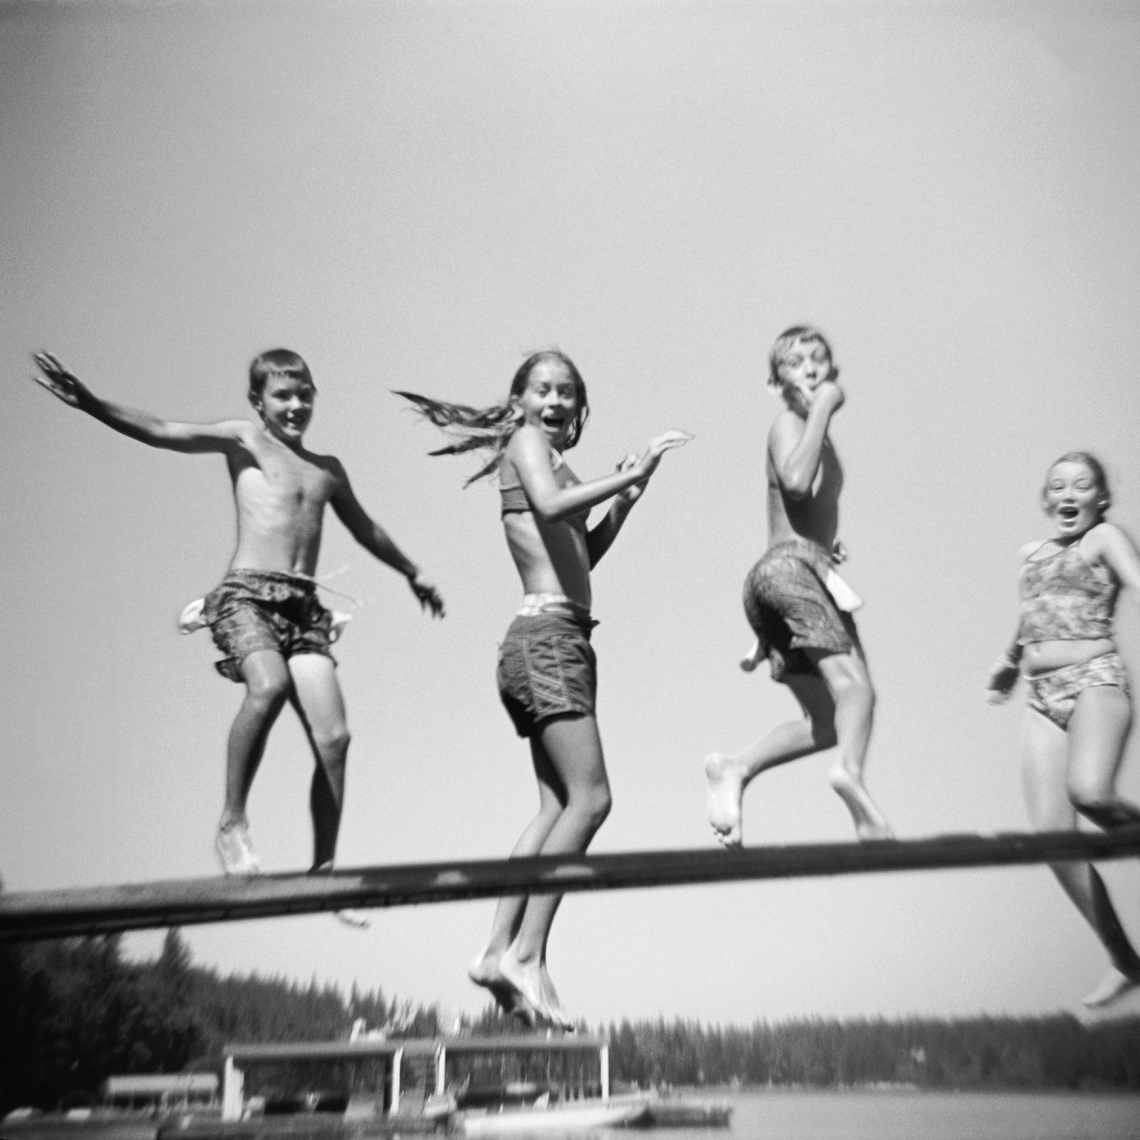 Black and white of Four kids jumping off a wooden diving board into a lake arms flailing